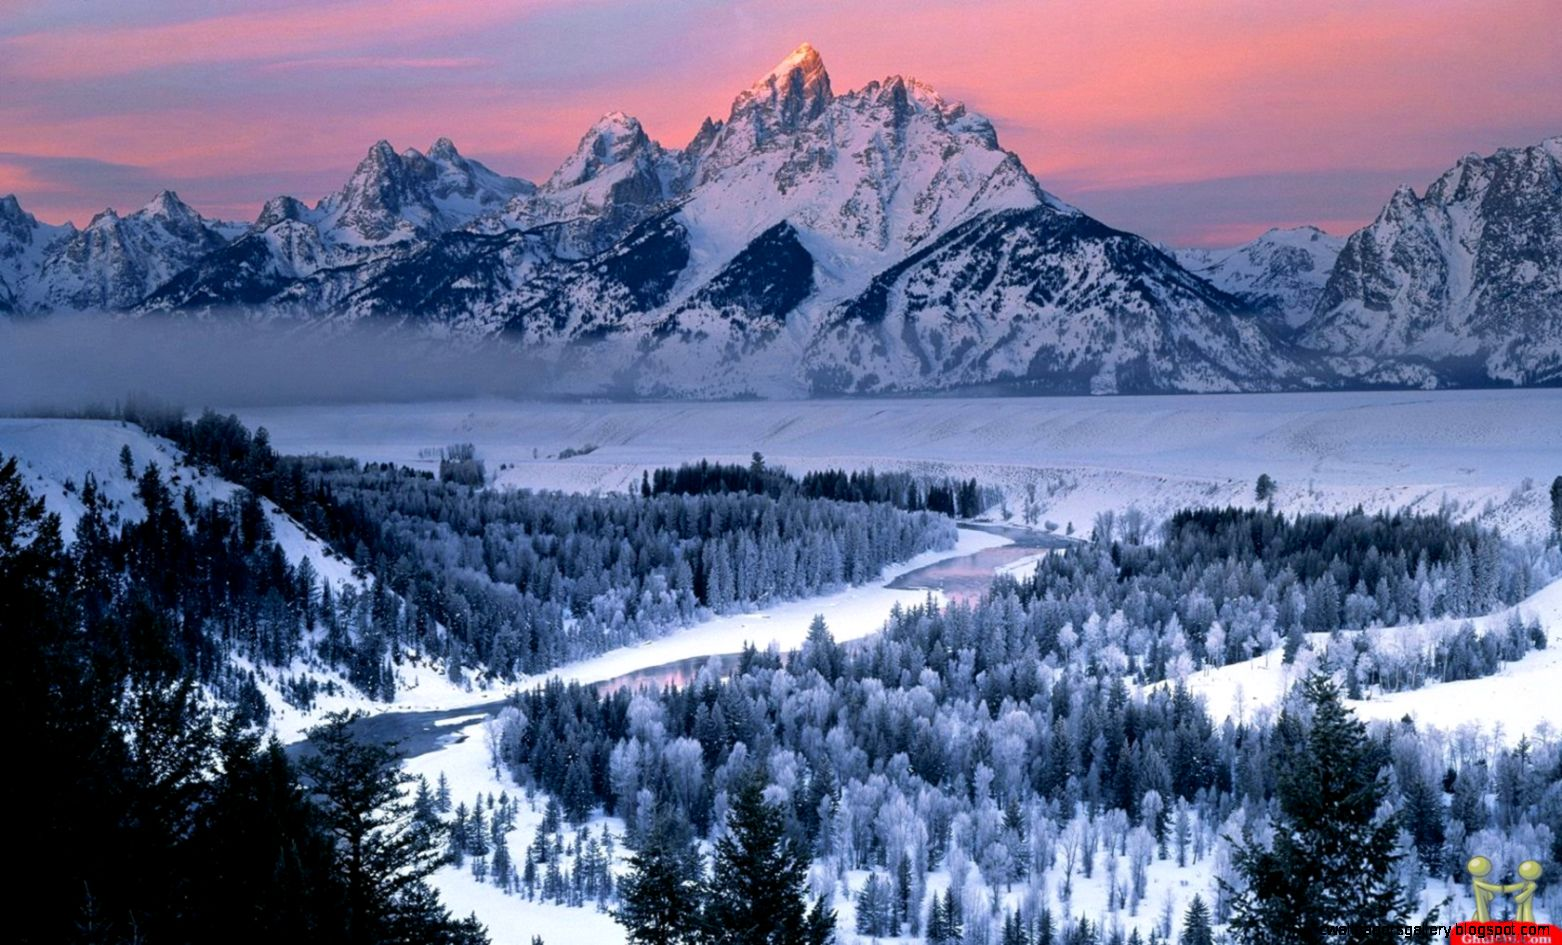 Beautiful snowy mountain pictures wallpapers gallery Beautiful snowfall pictures